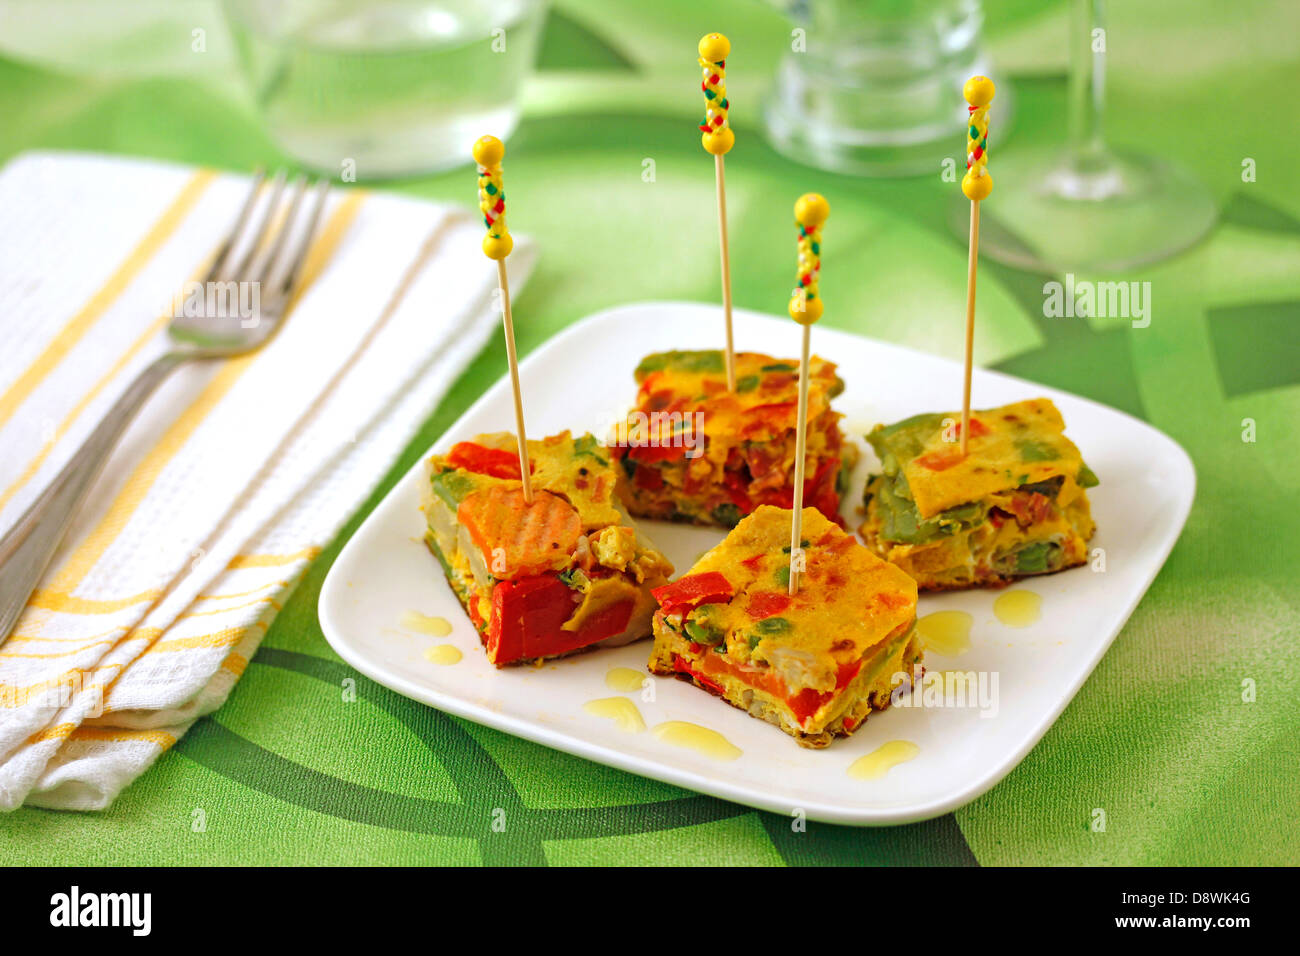 Vegetables omelet. Recipe available. - Stock Image